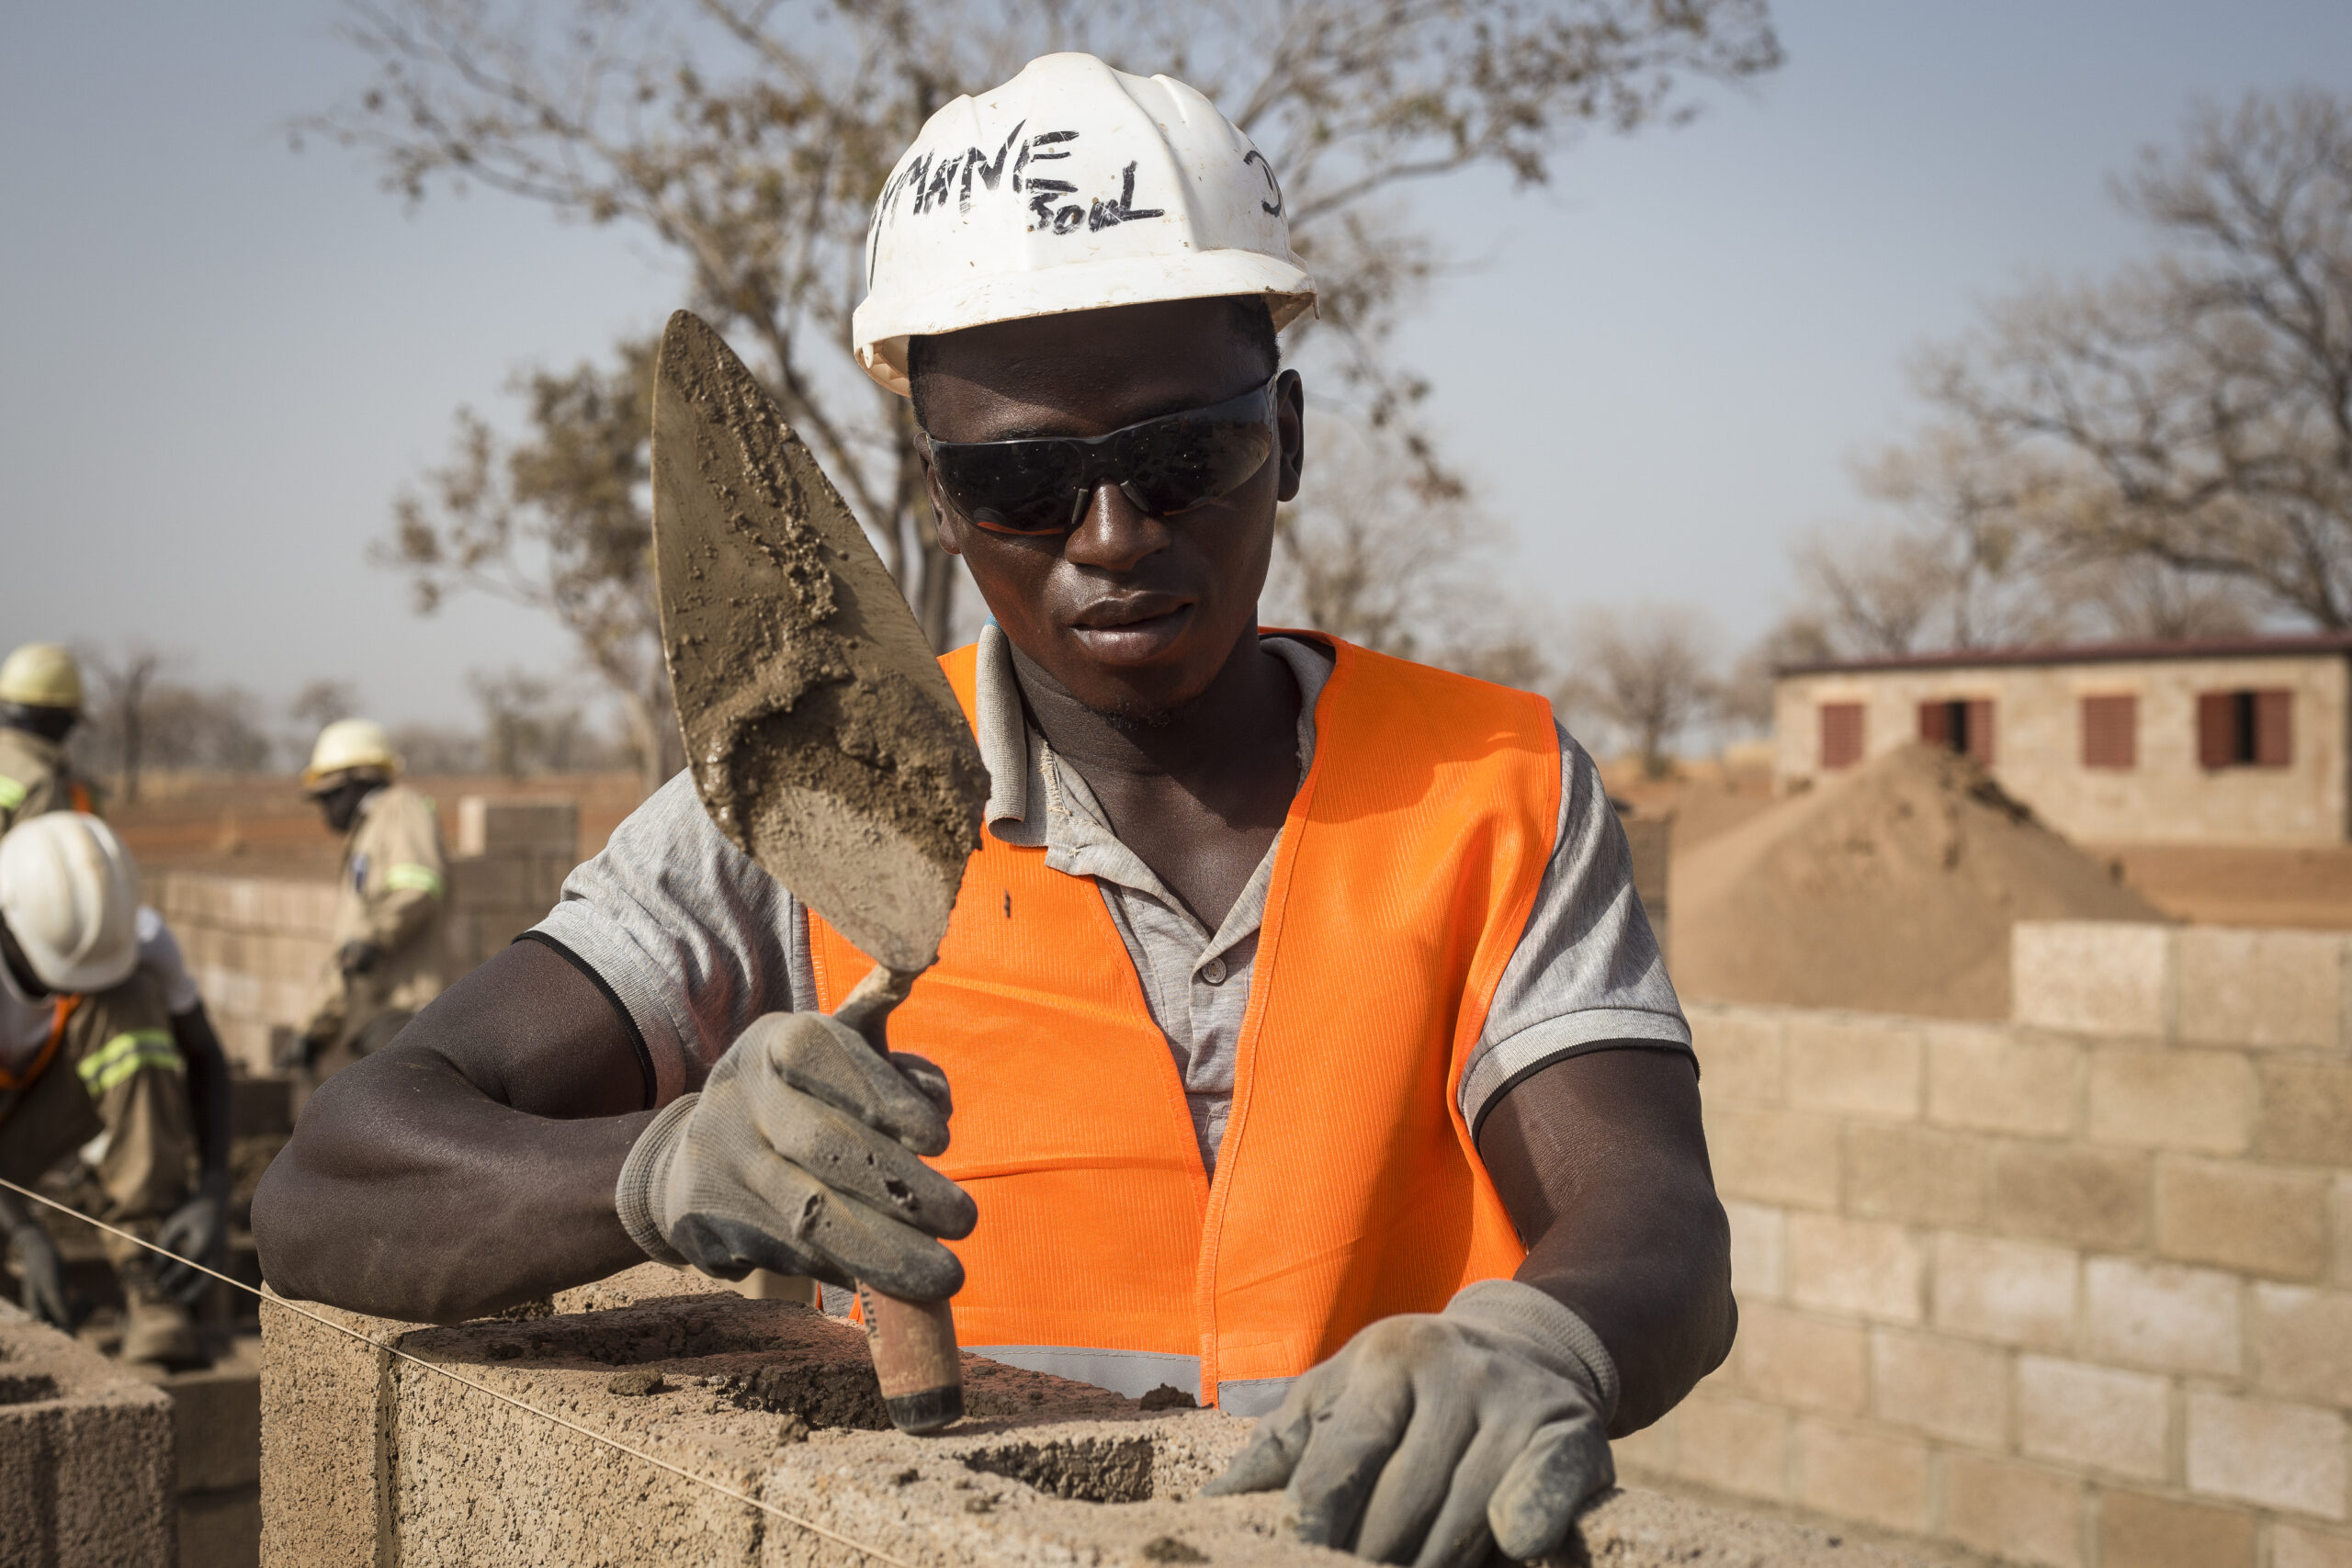 Developing the skills for stronger economies